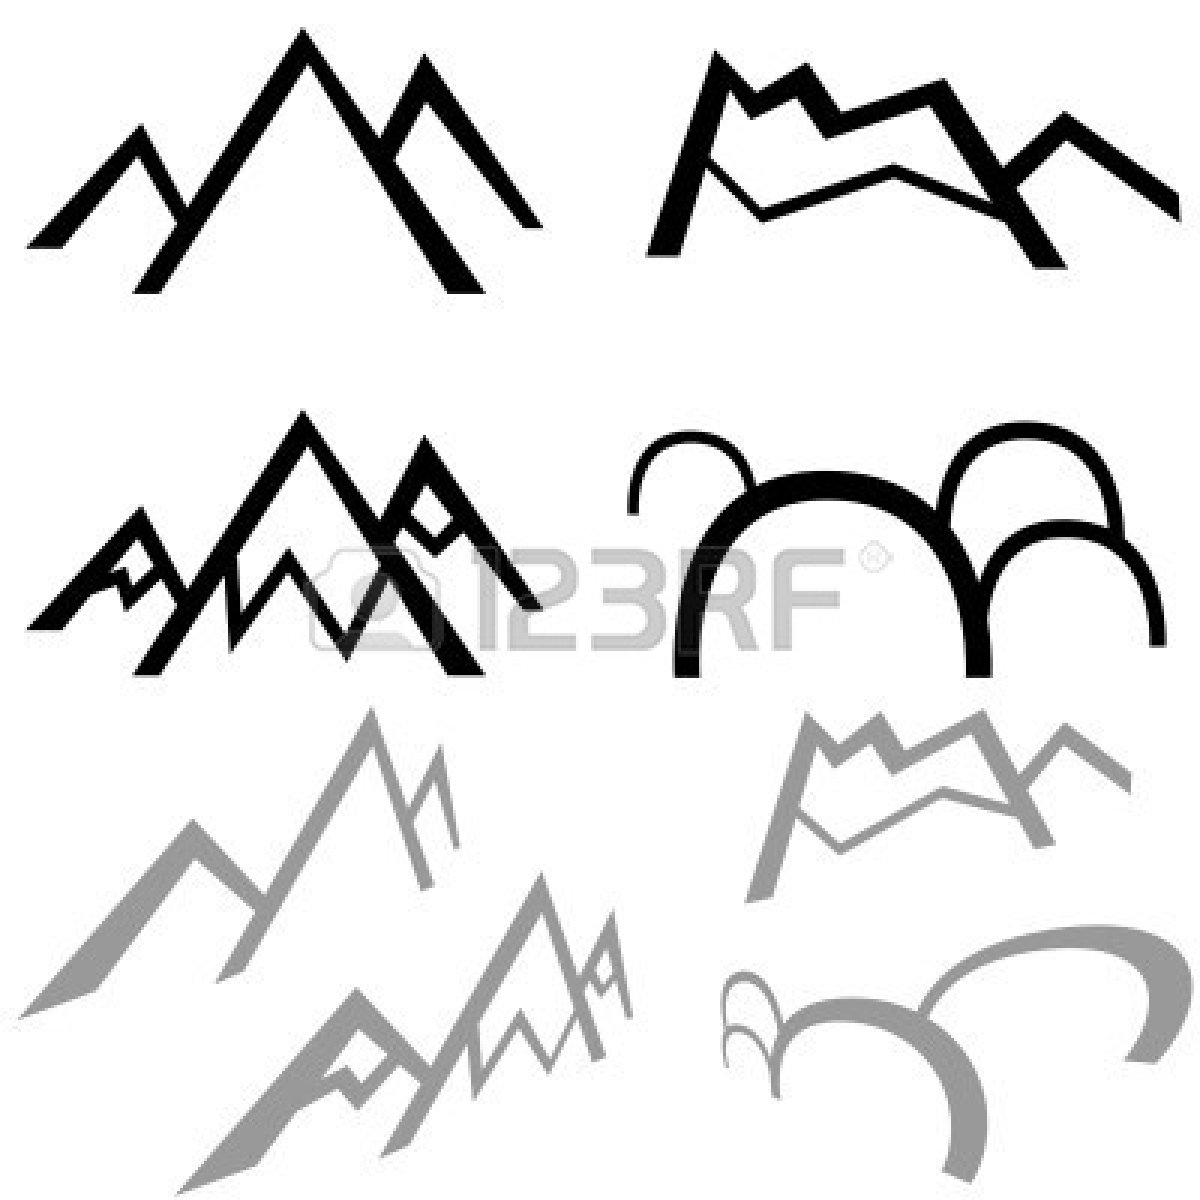 Mountain silhouette drawing the image Mountain silhouette